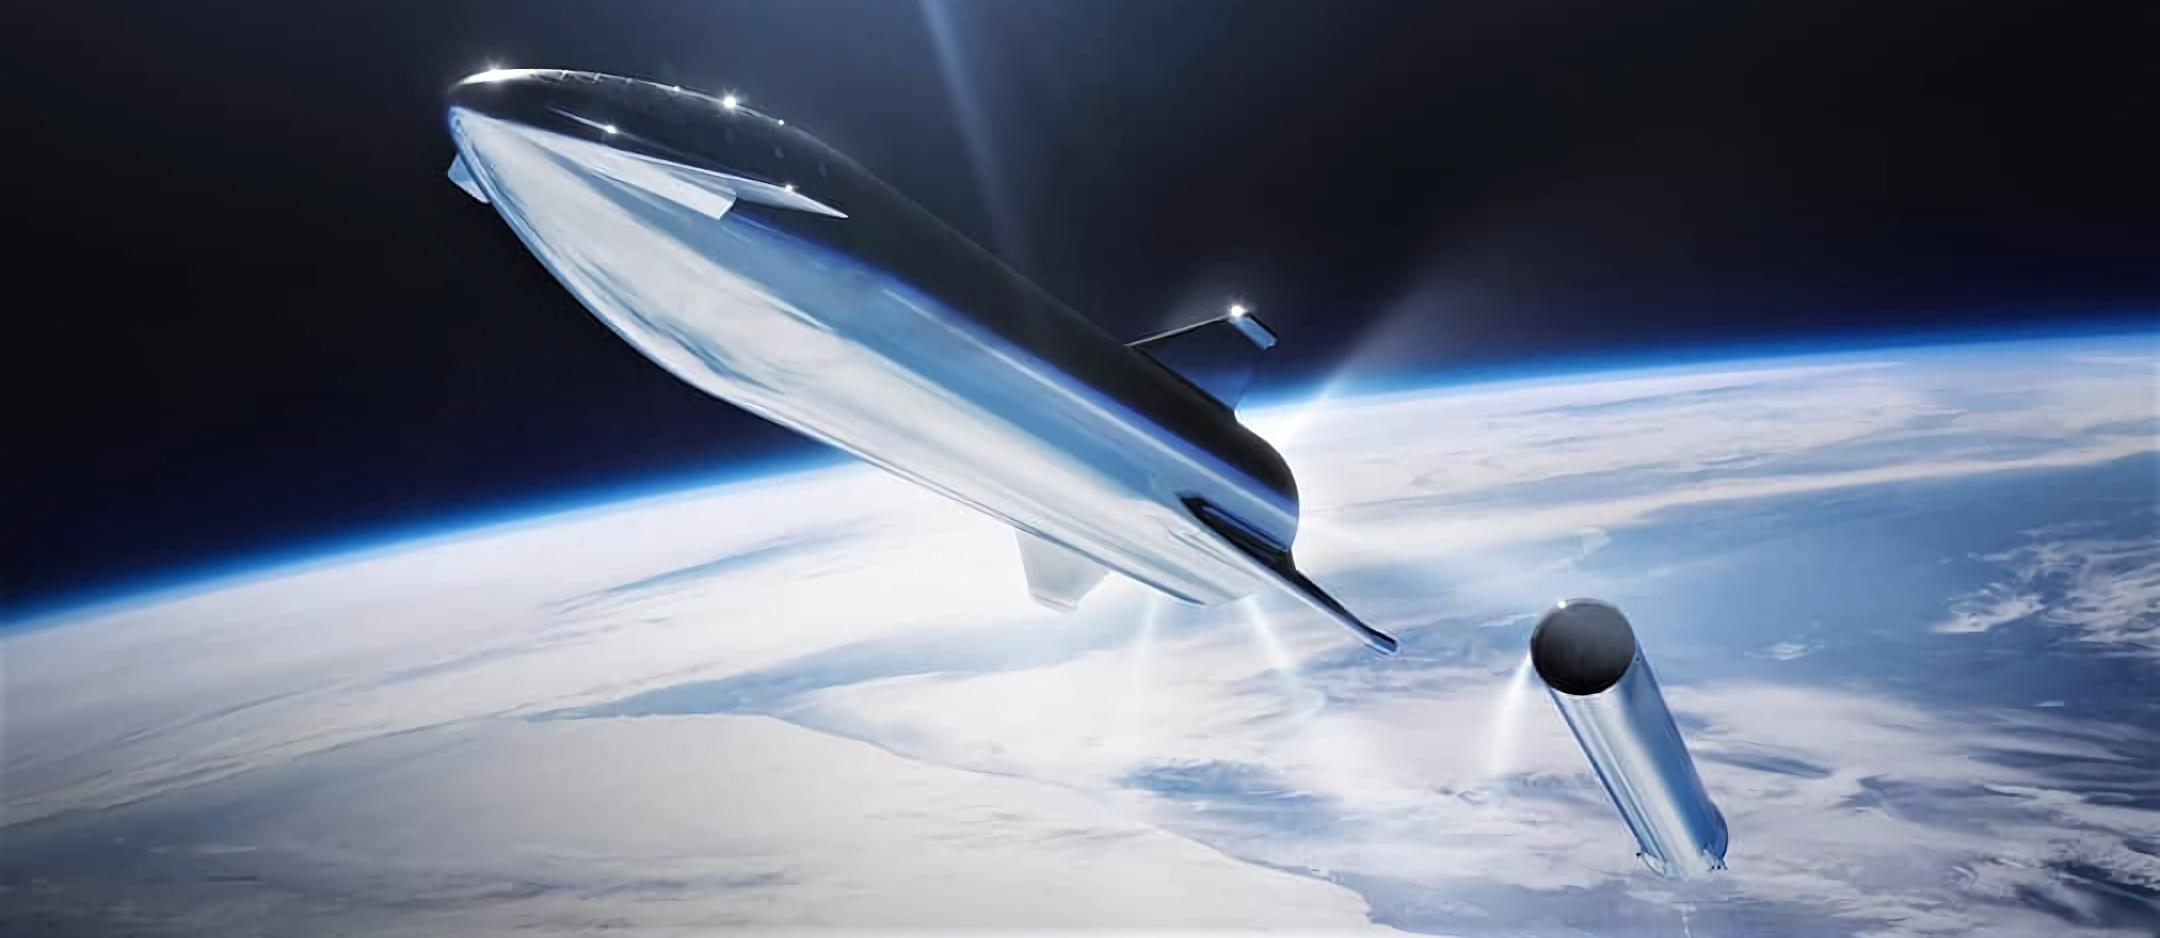 Starship Super Heavy steel render 2019 (SpaceX) 2X 1 crop